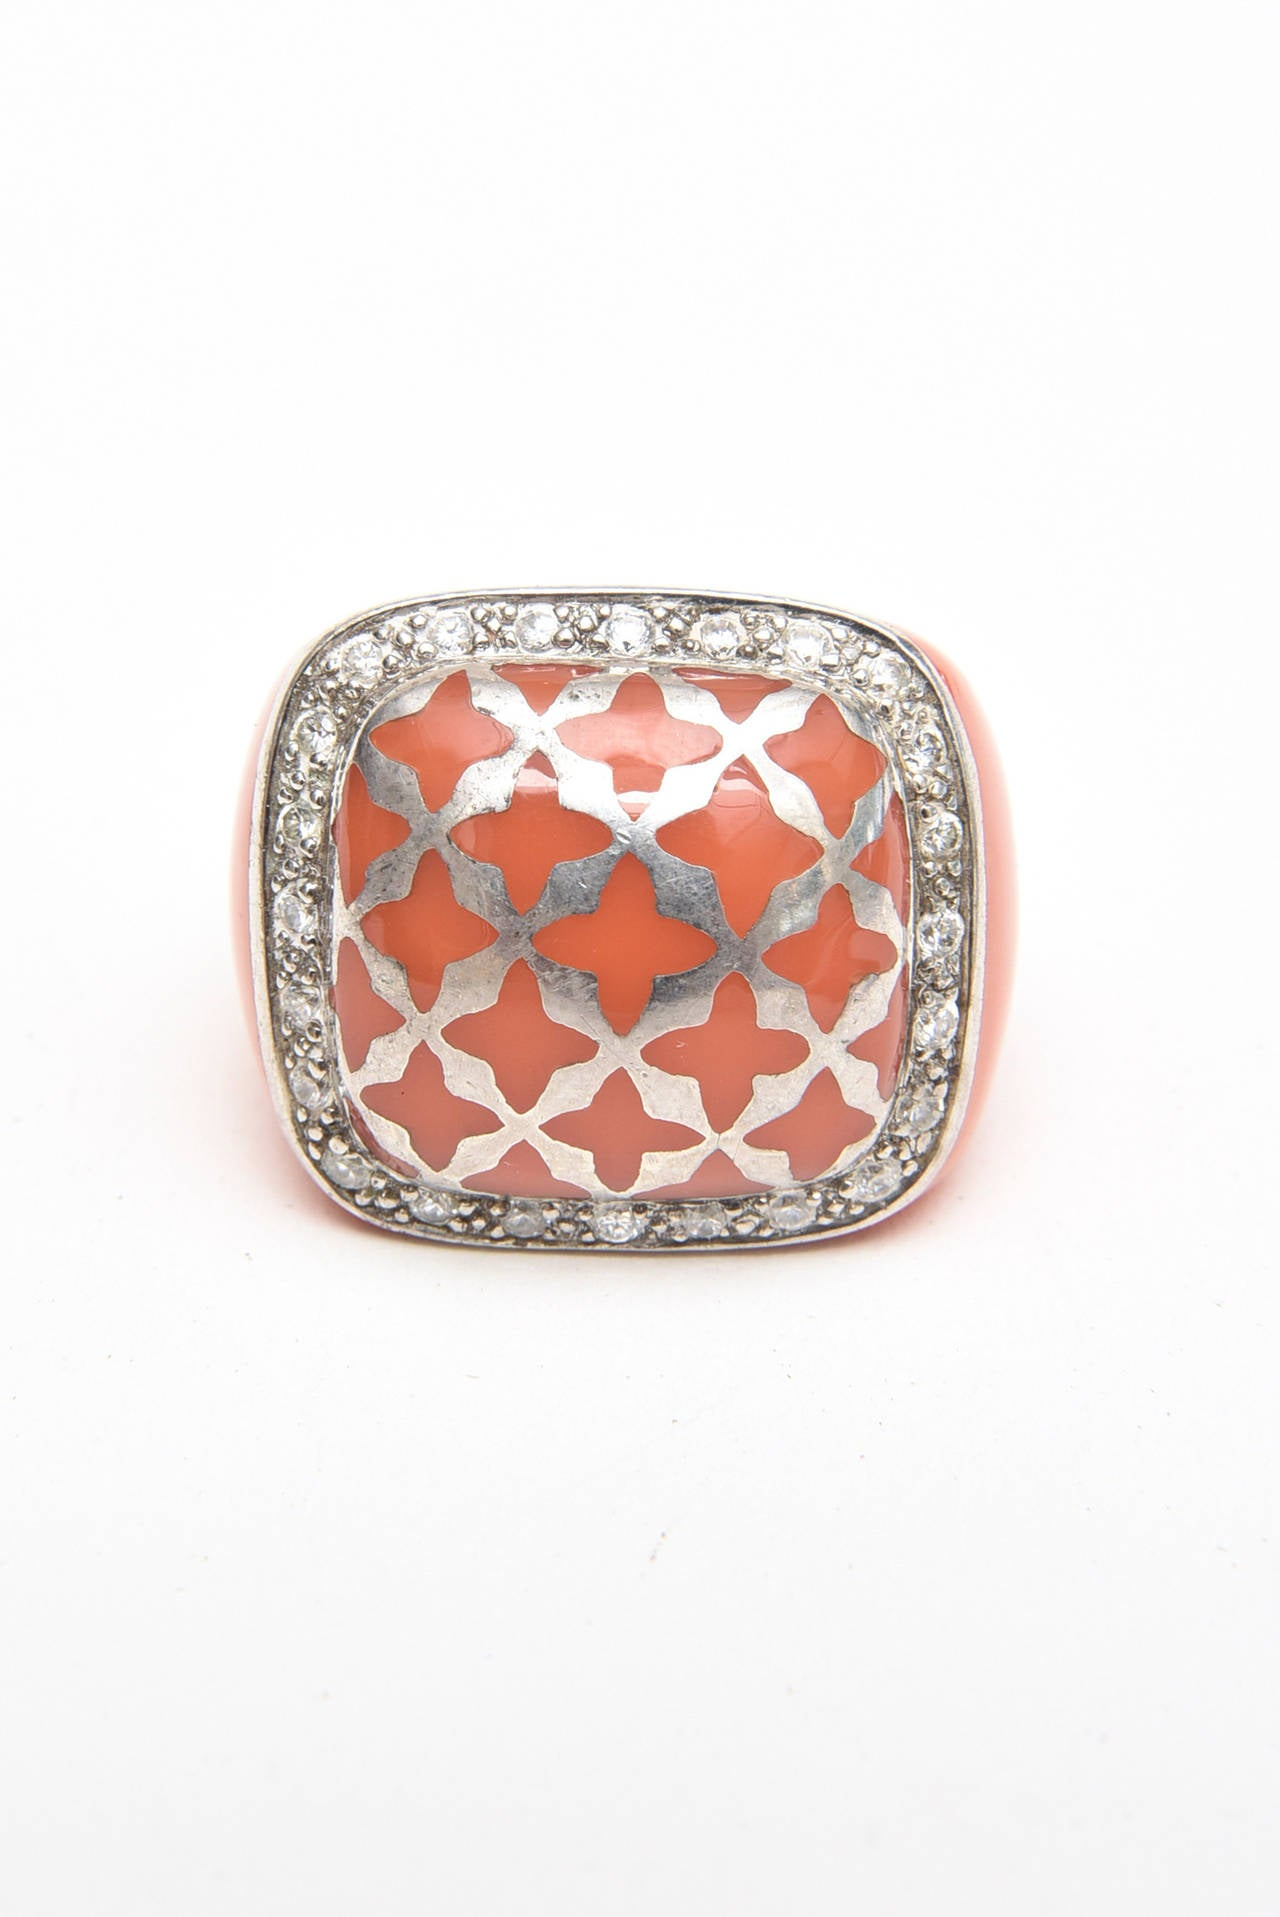 The luscious coral hermes orange color of the resin set against the sterling silver is dramatic and show stopping. There is a diamond like lattice pattern of sterling silver. This French dome ring is fabulous and unusual. it is by Angelique de Paris